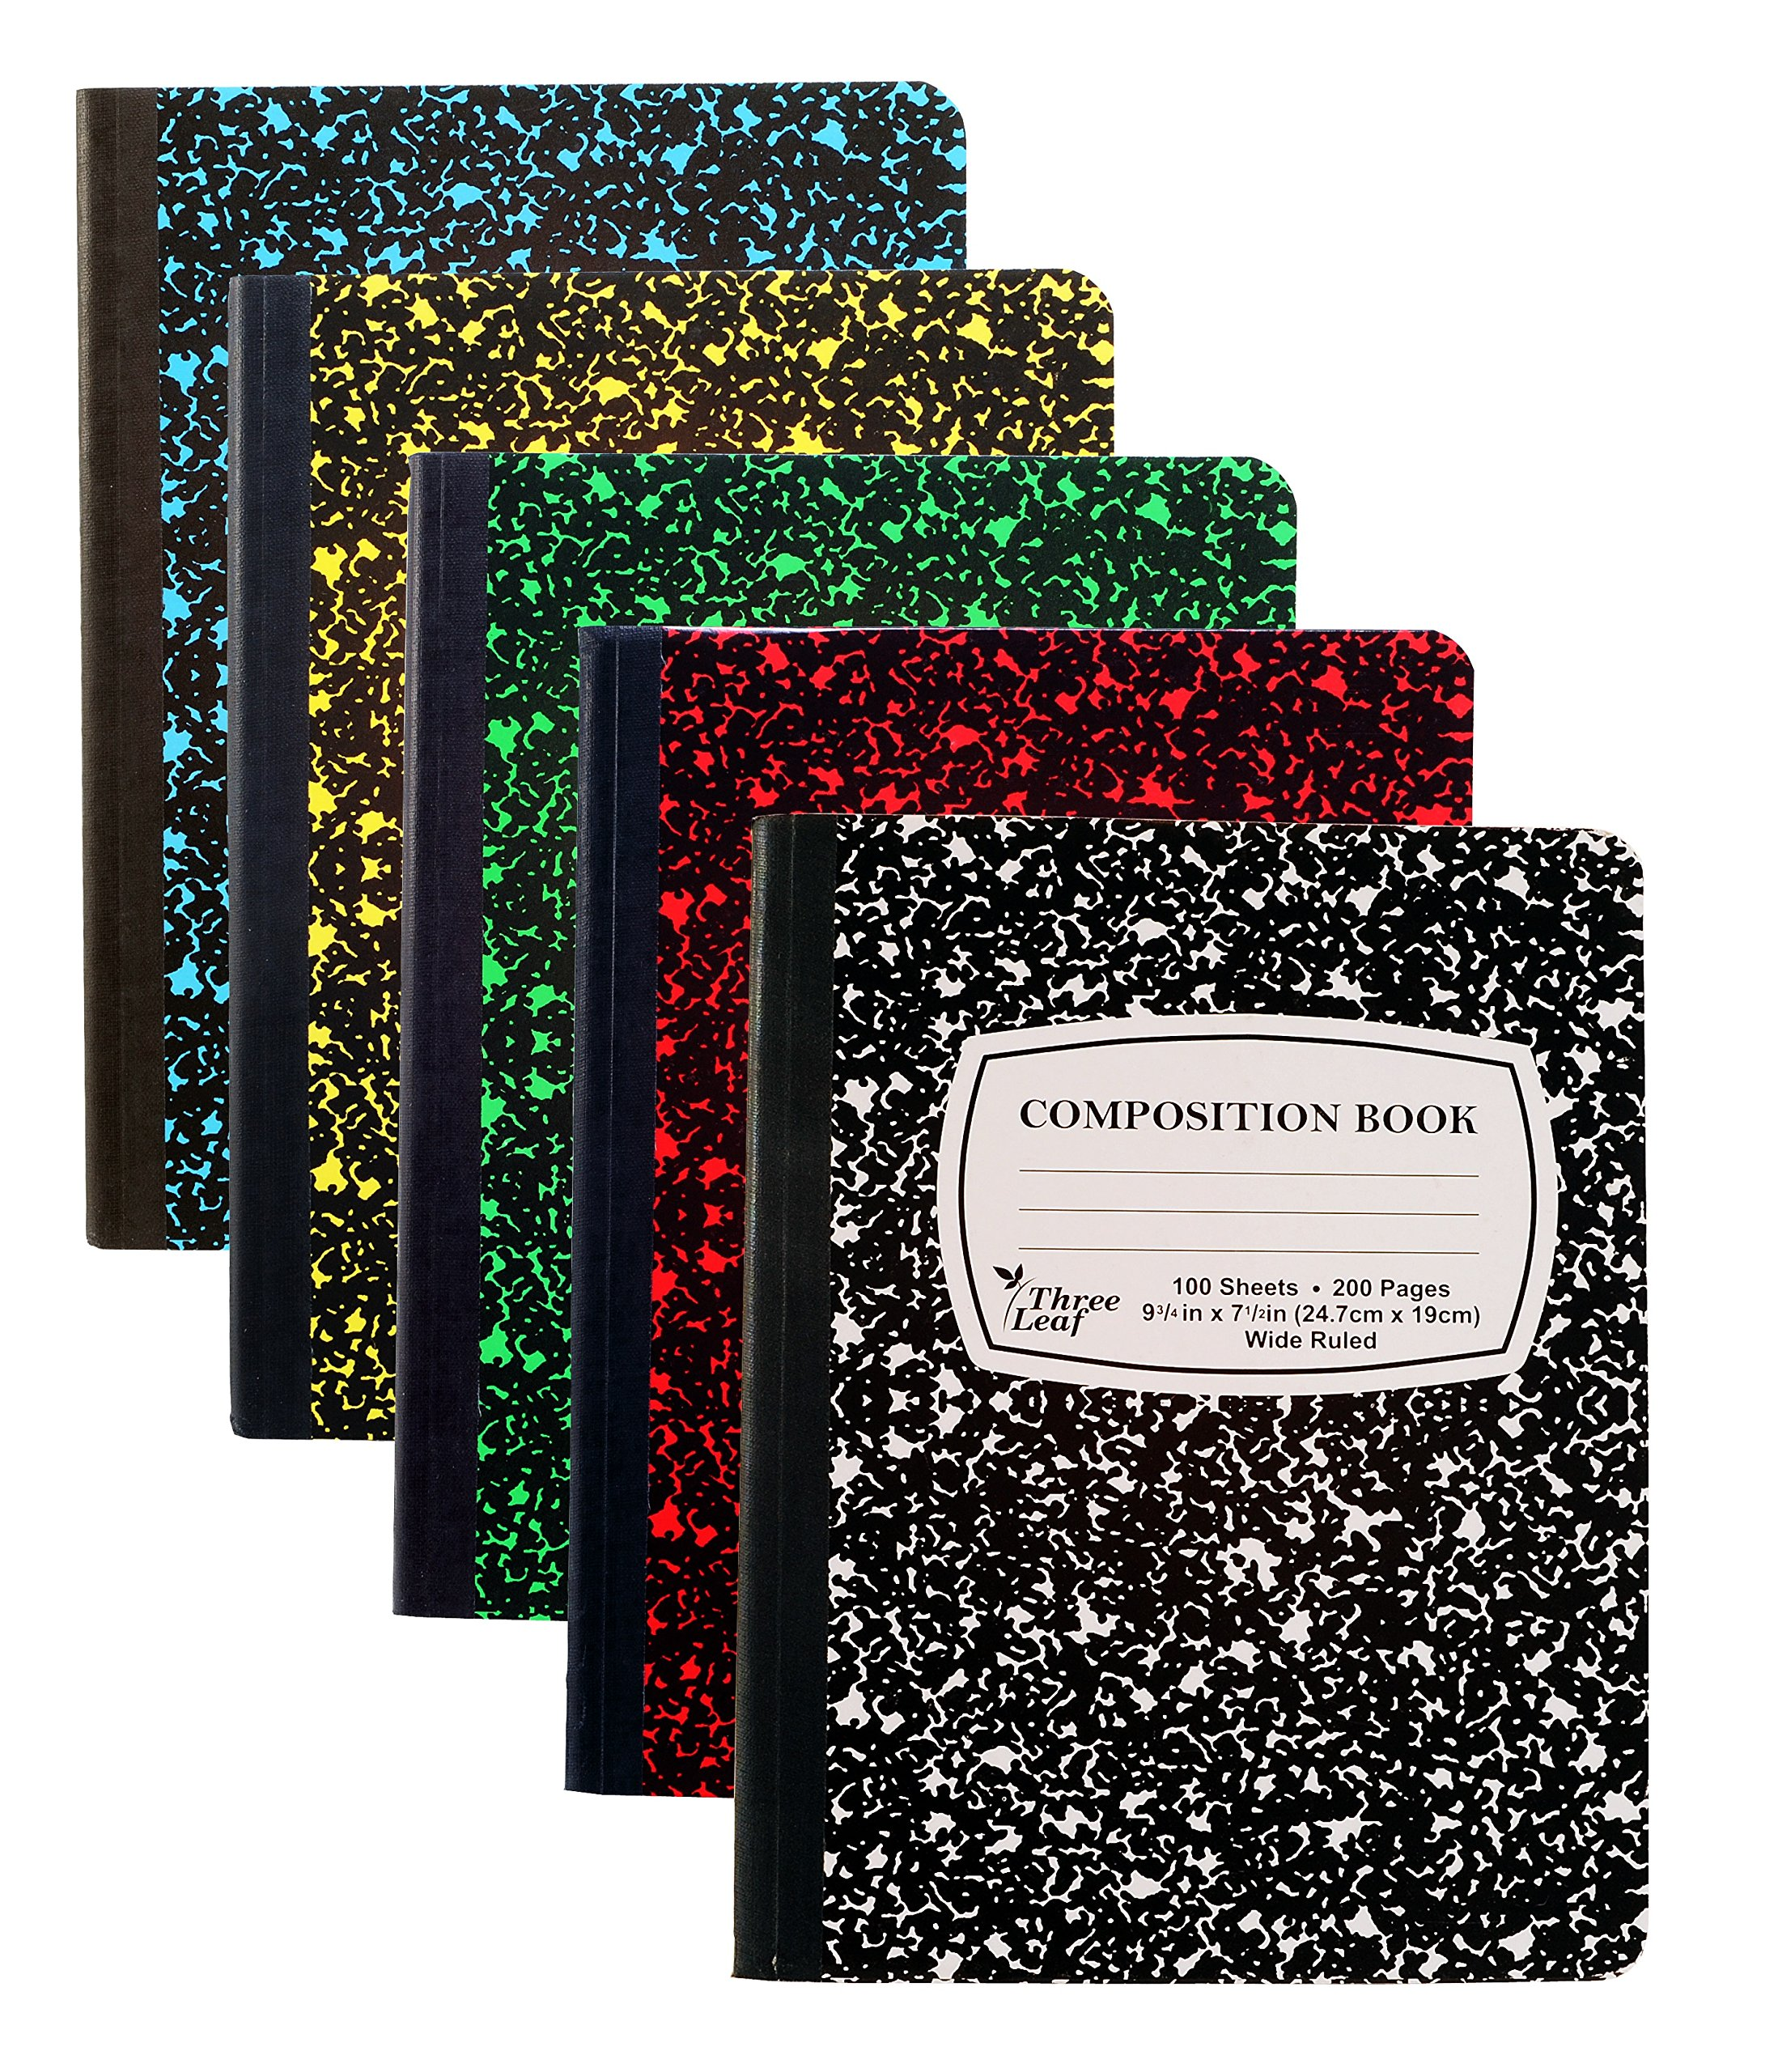 5-Pack Composition Notebook, 9-3/4'' x 7-1/2'', Wide Ruled, 100 Sheet (200 Pages), Weekly Class Schedule and Multiplication/Conversion Tables - Colors: Black, Red, Green, Yellow, Blue. (5-Pack)